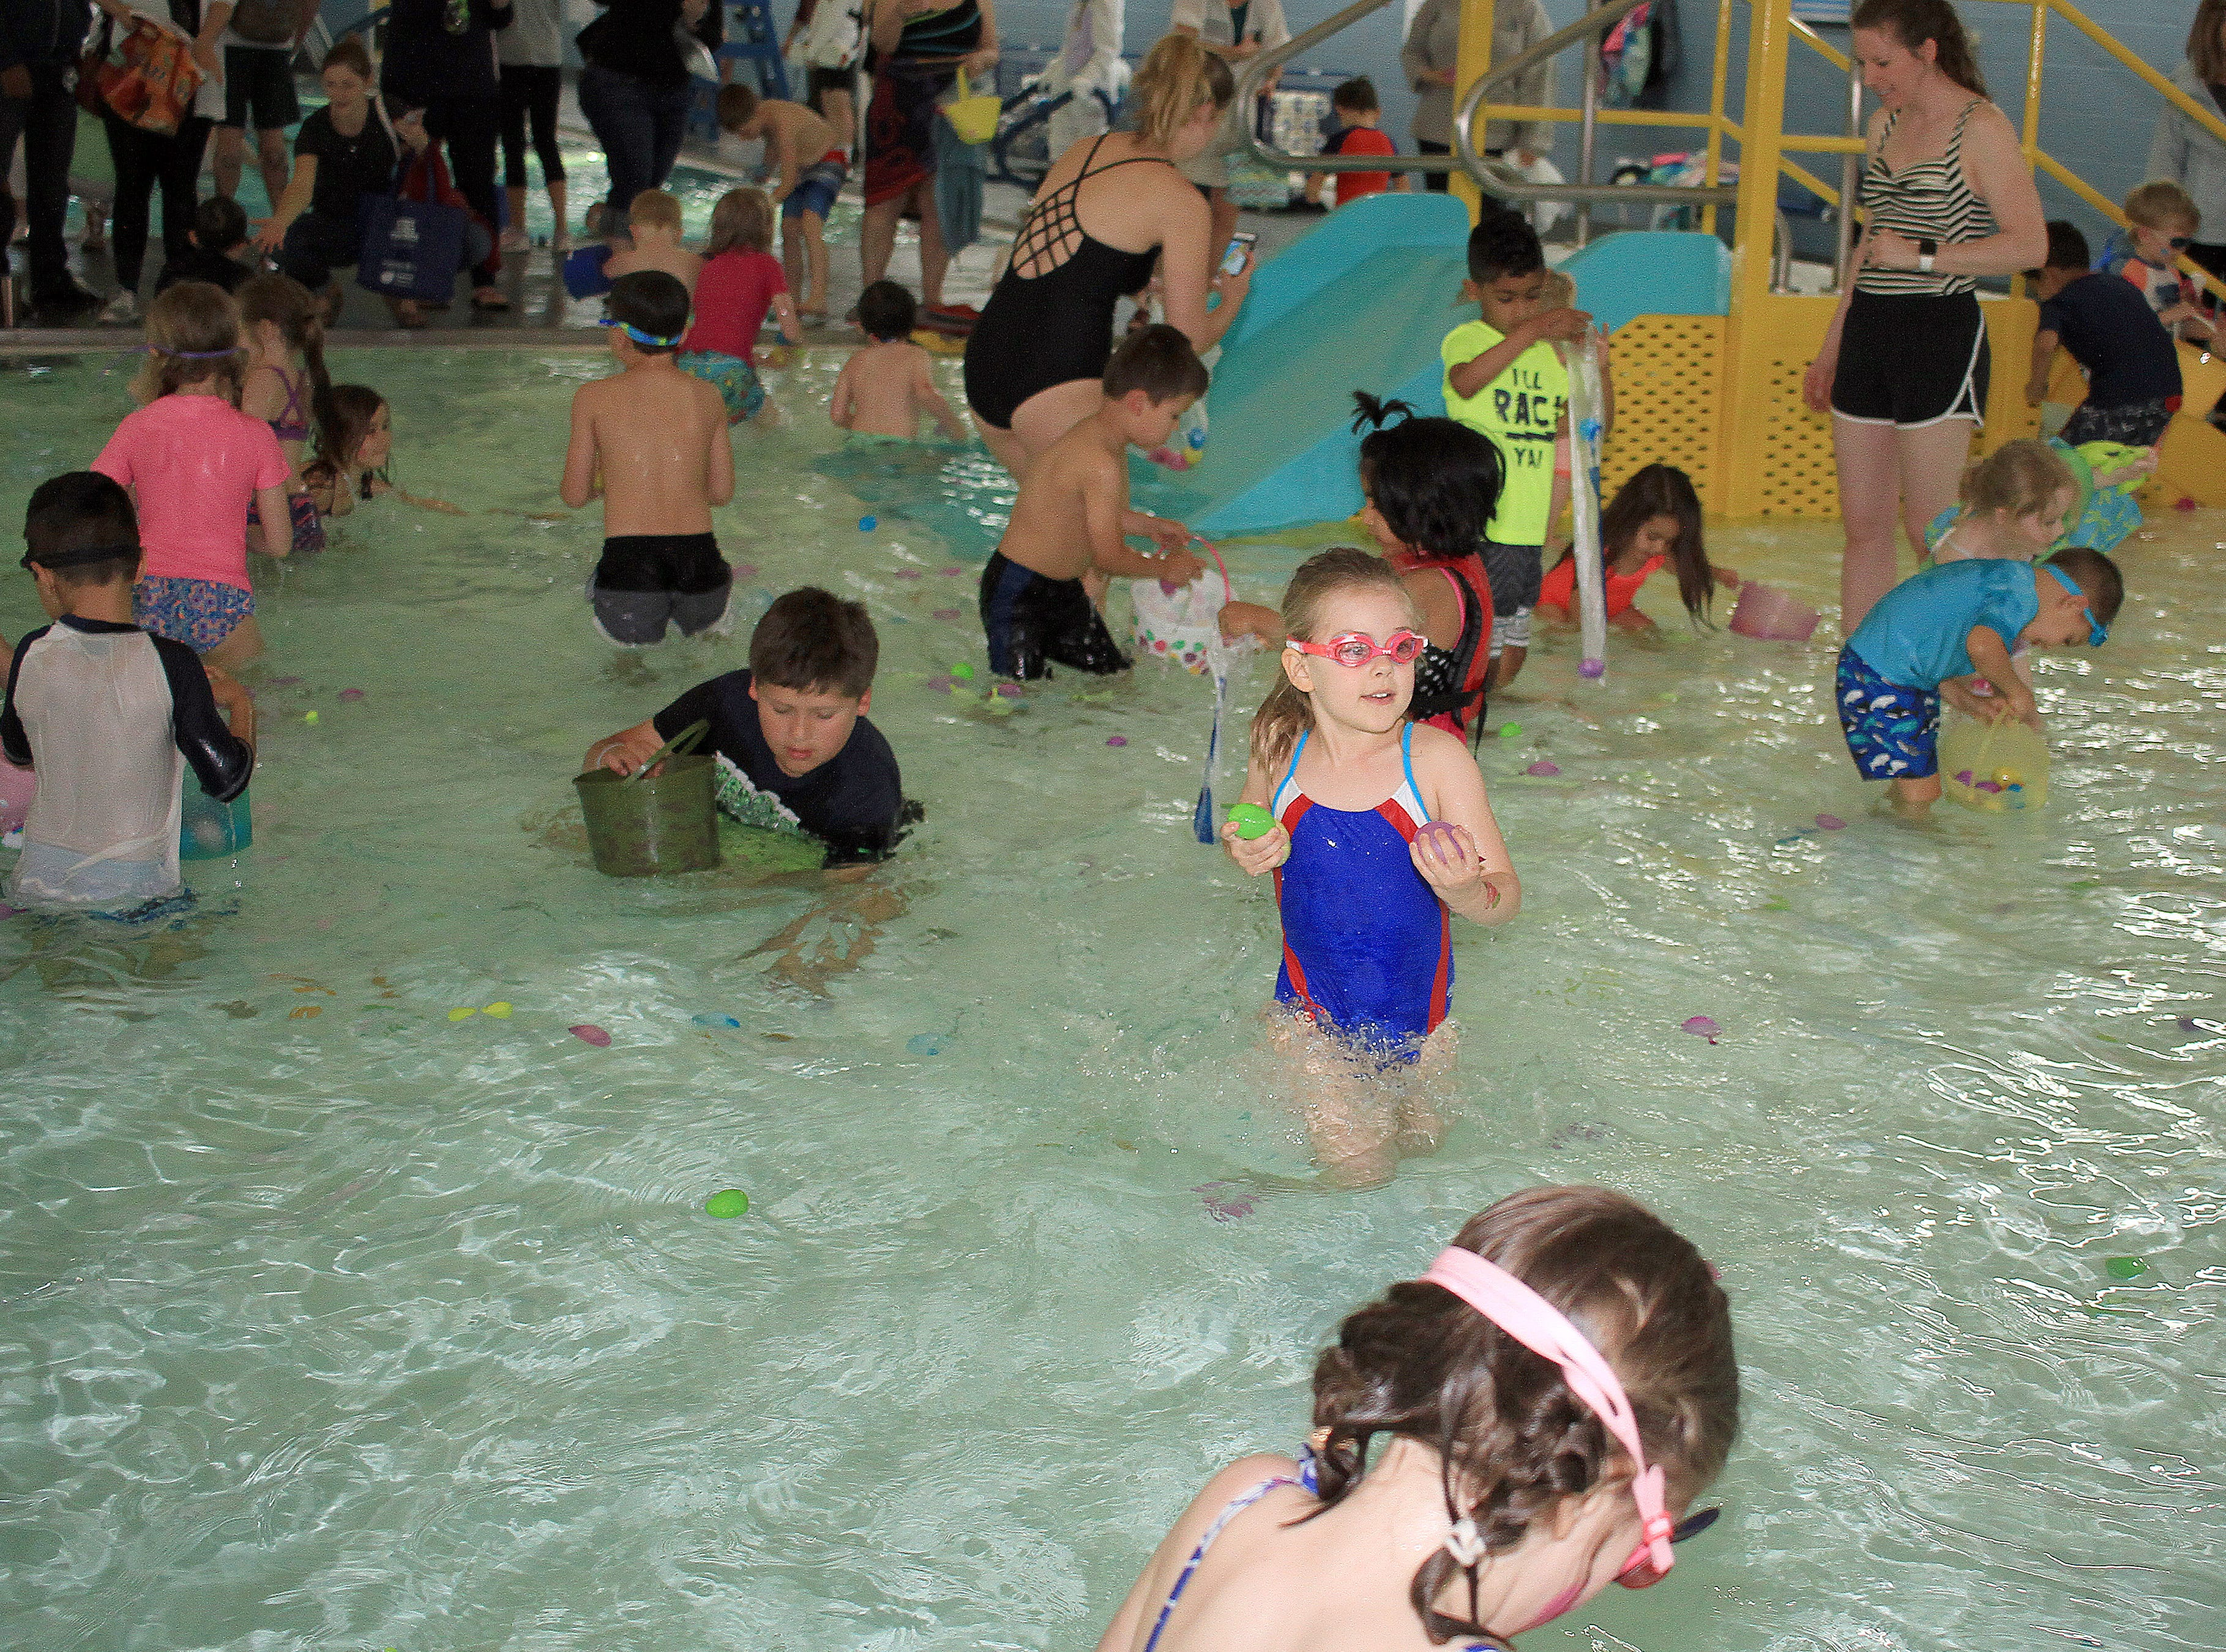 Kids hunt and dive for easter eggs at the Egg Dive at the Sumner County YMCA in Hendersonville, TN on Saturday, April 13, 2019.